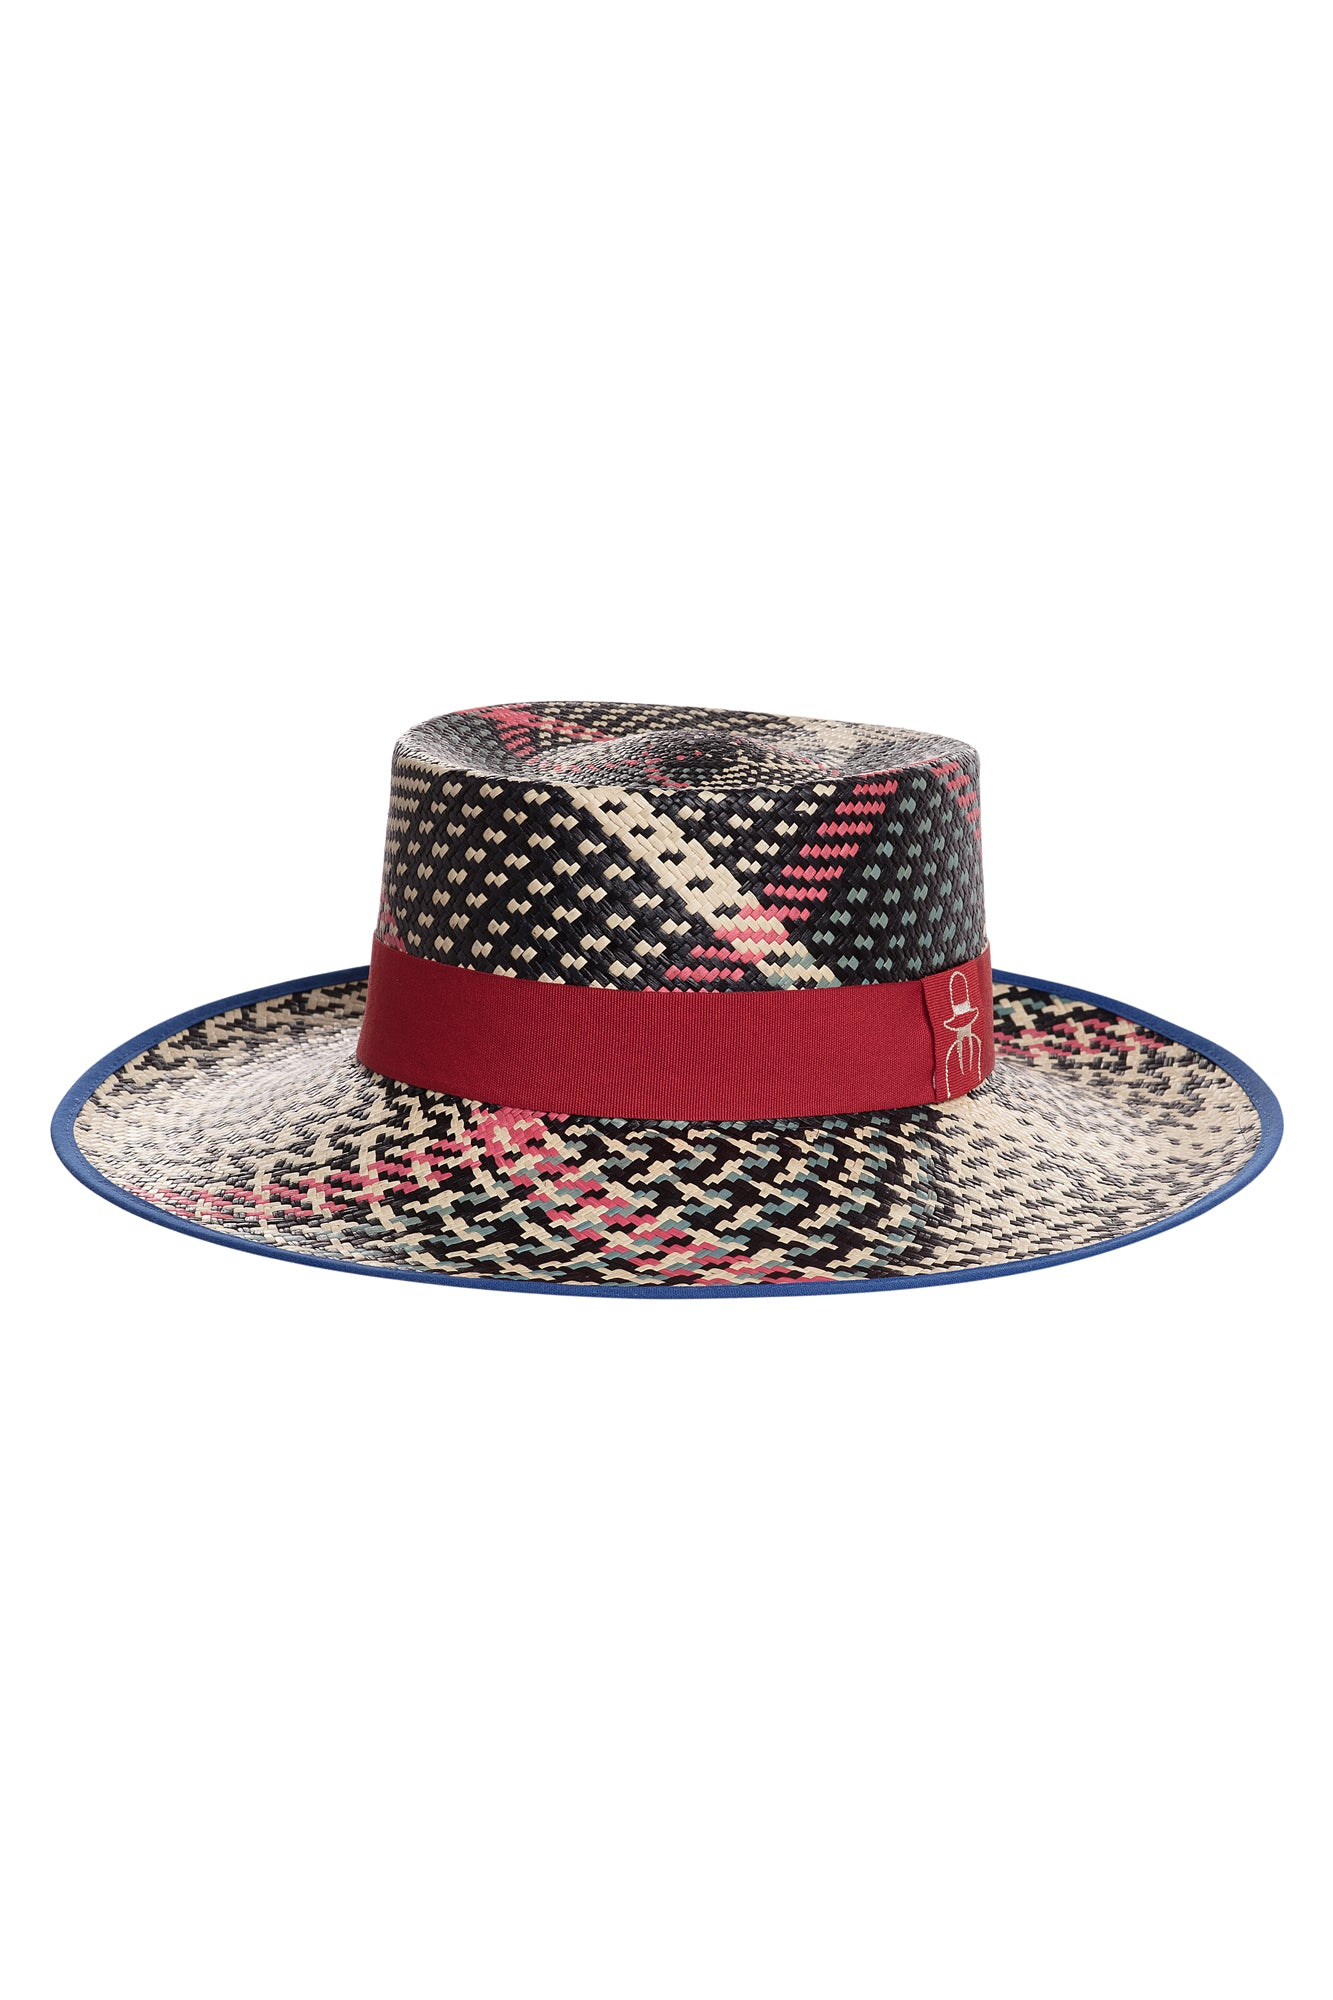 Carolina K Boat Straw Hat Blue/Black/Red